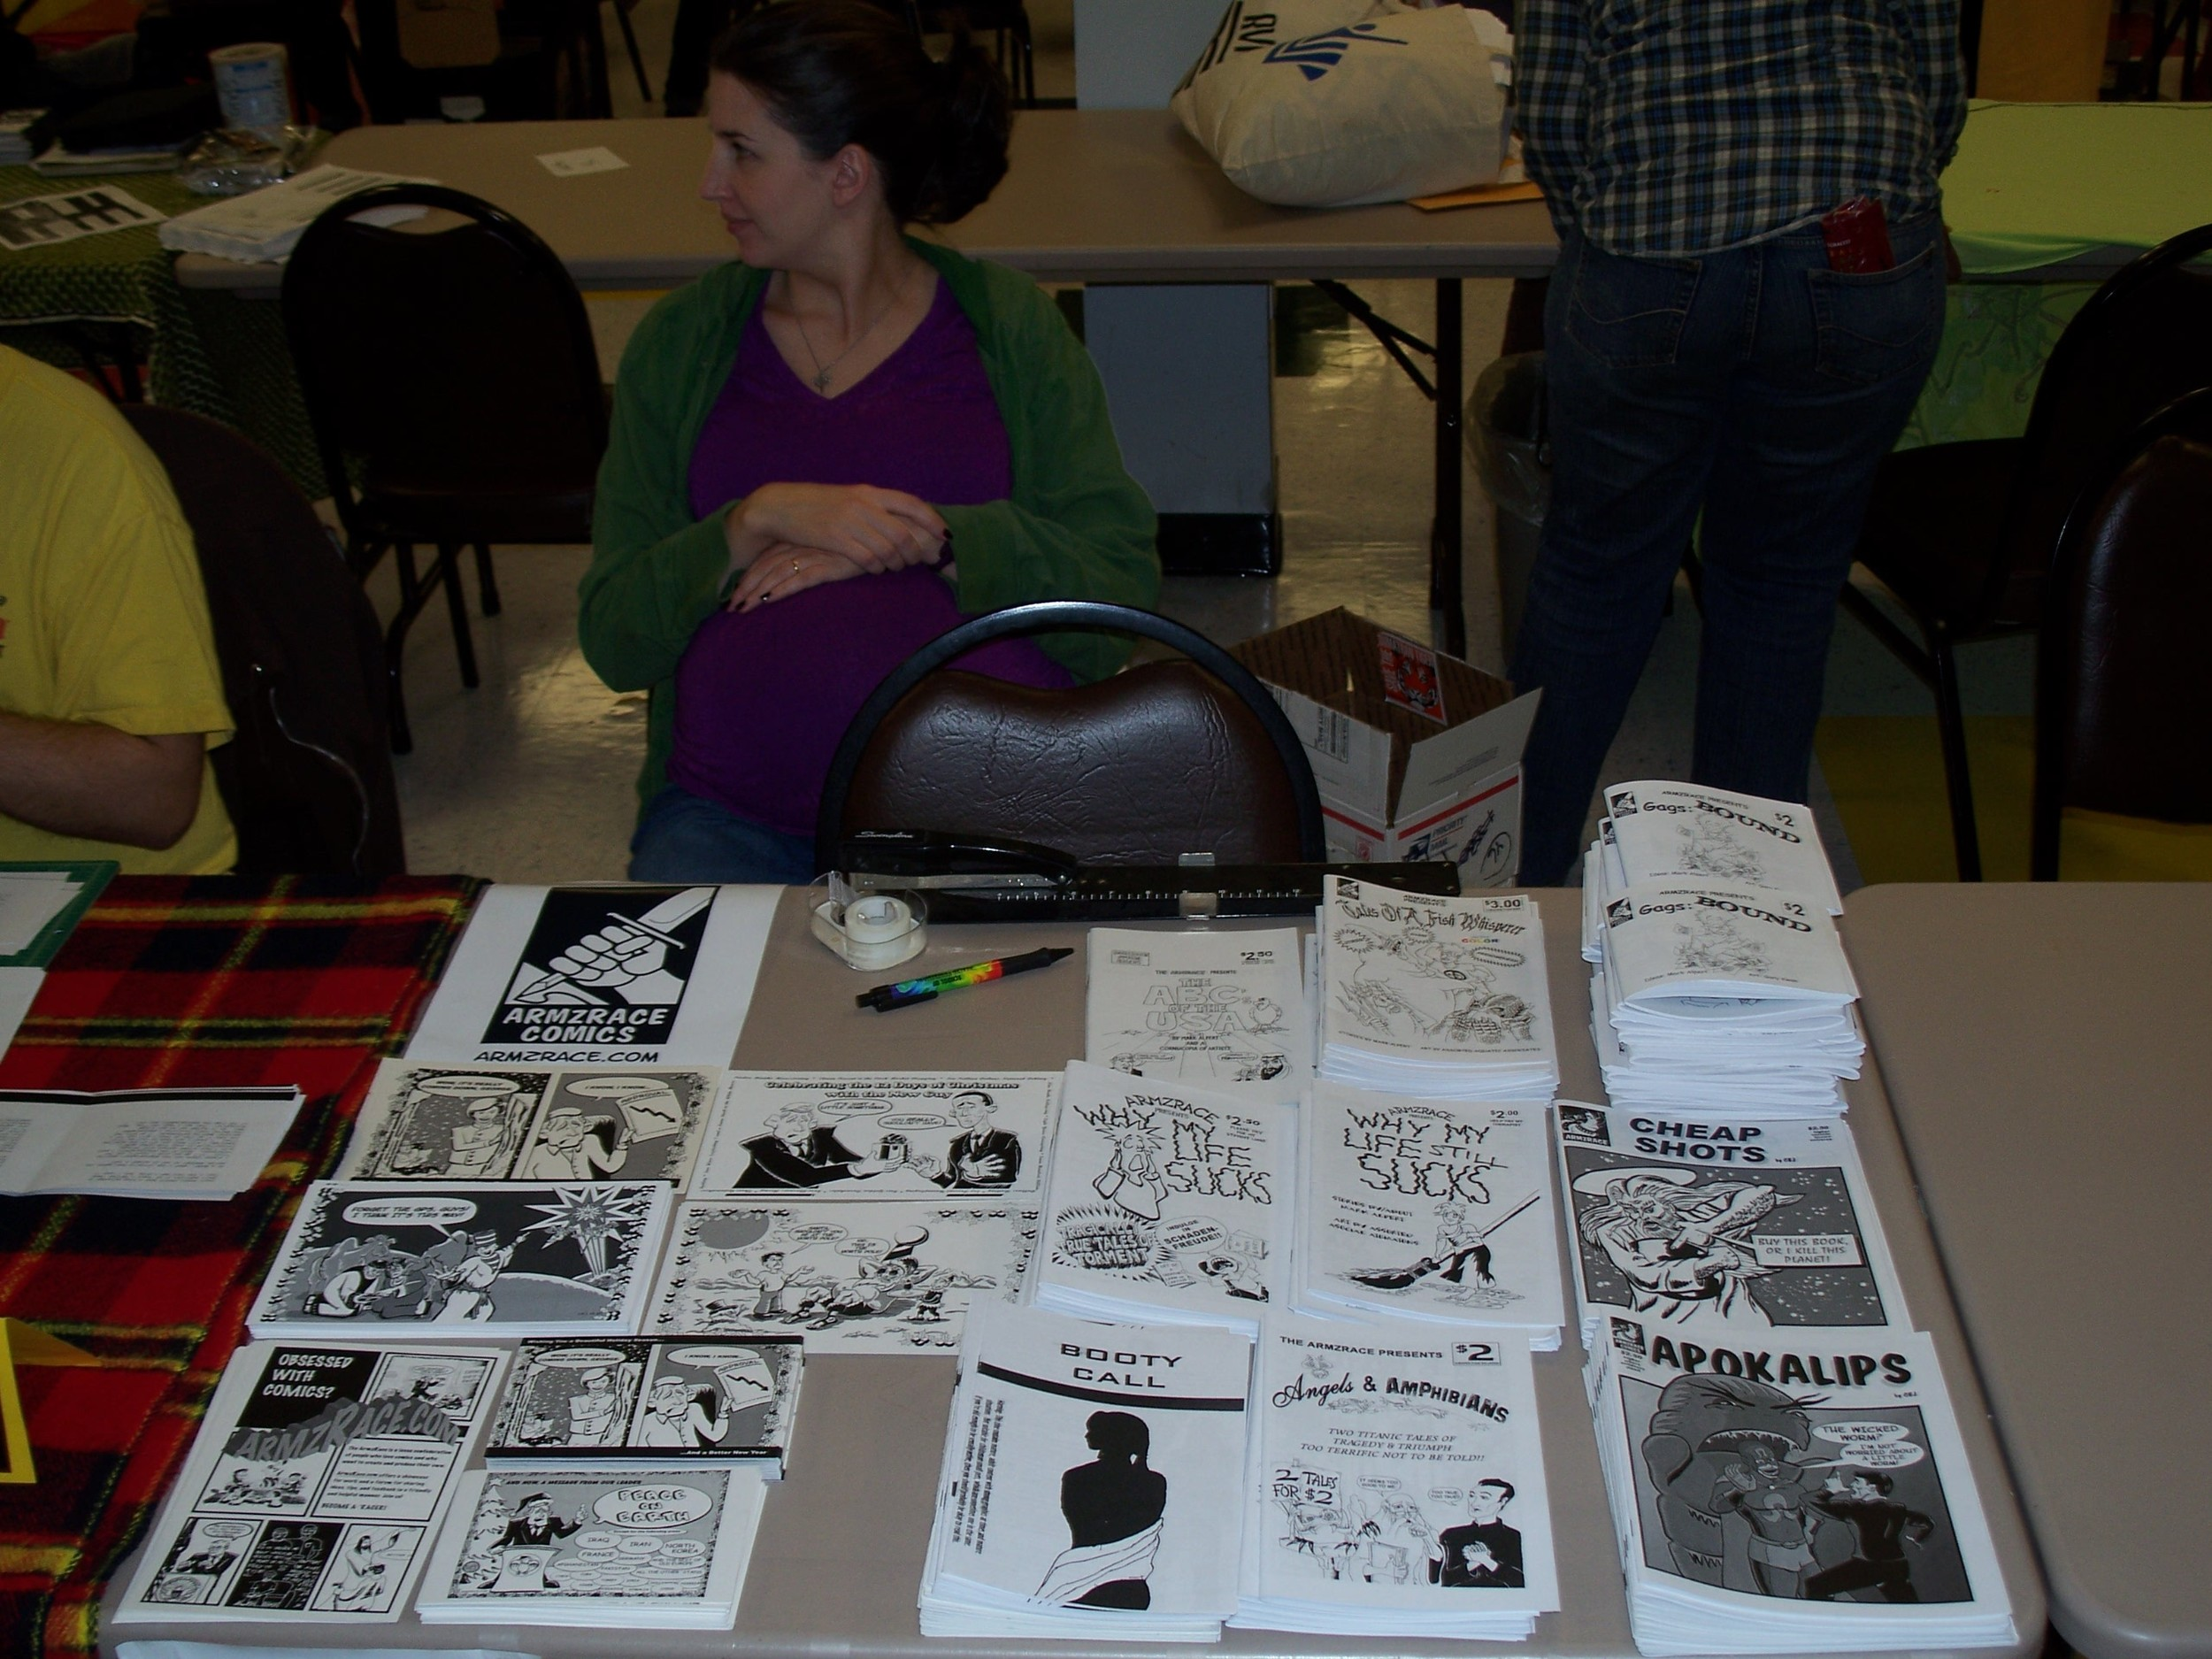 The ArmzRace Comics on display.